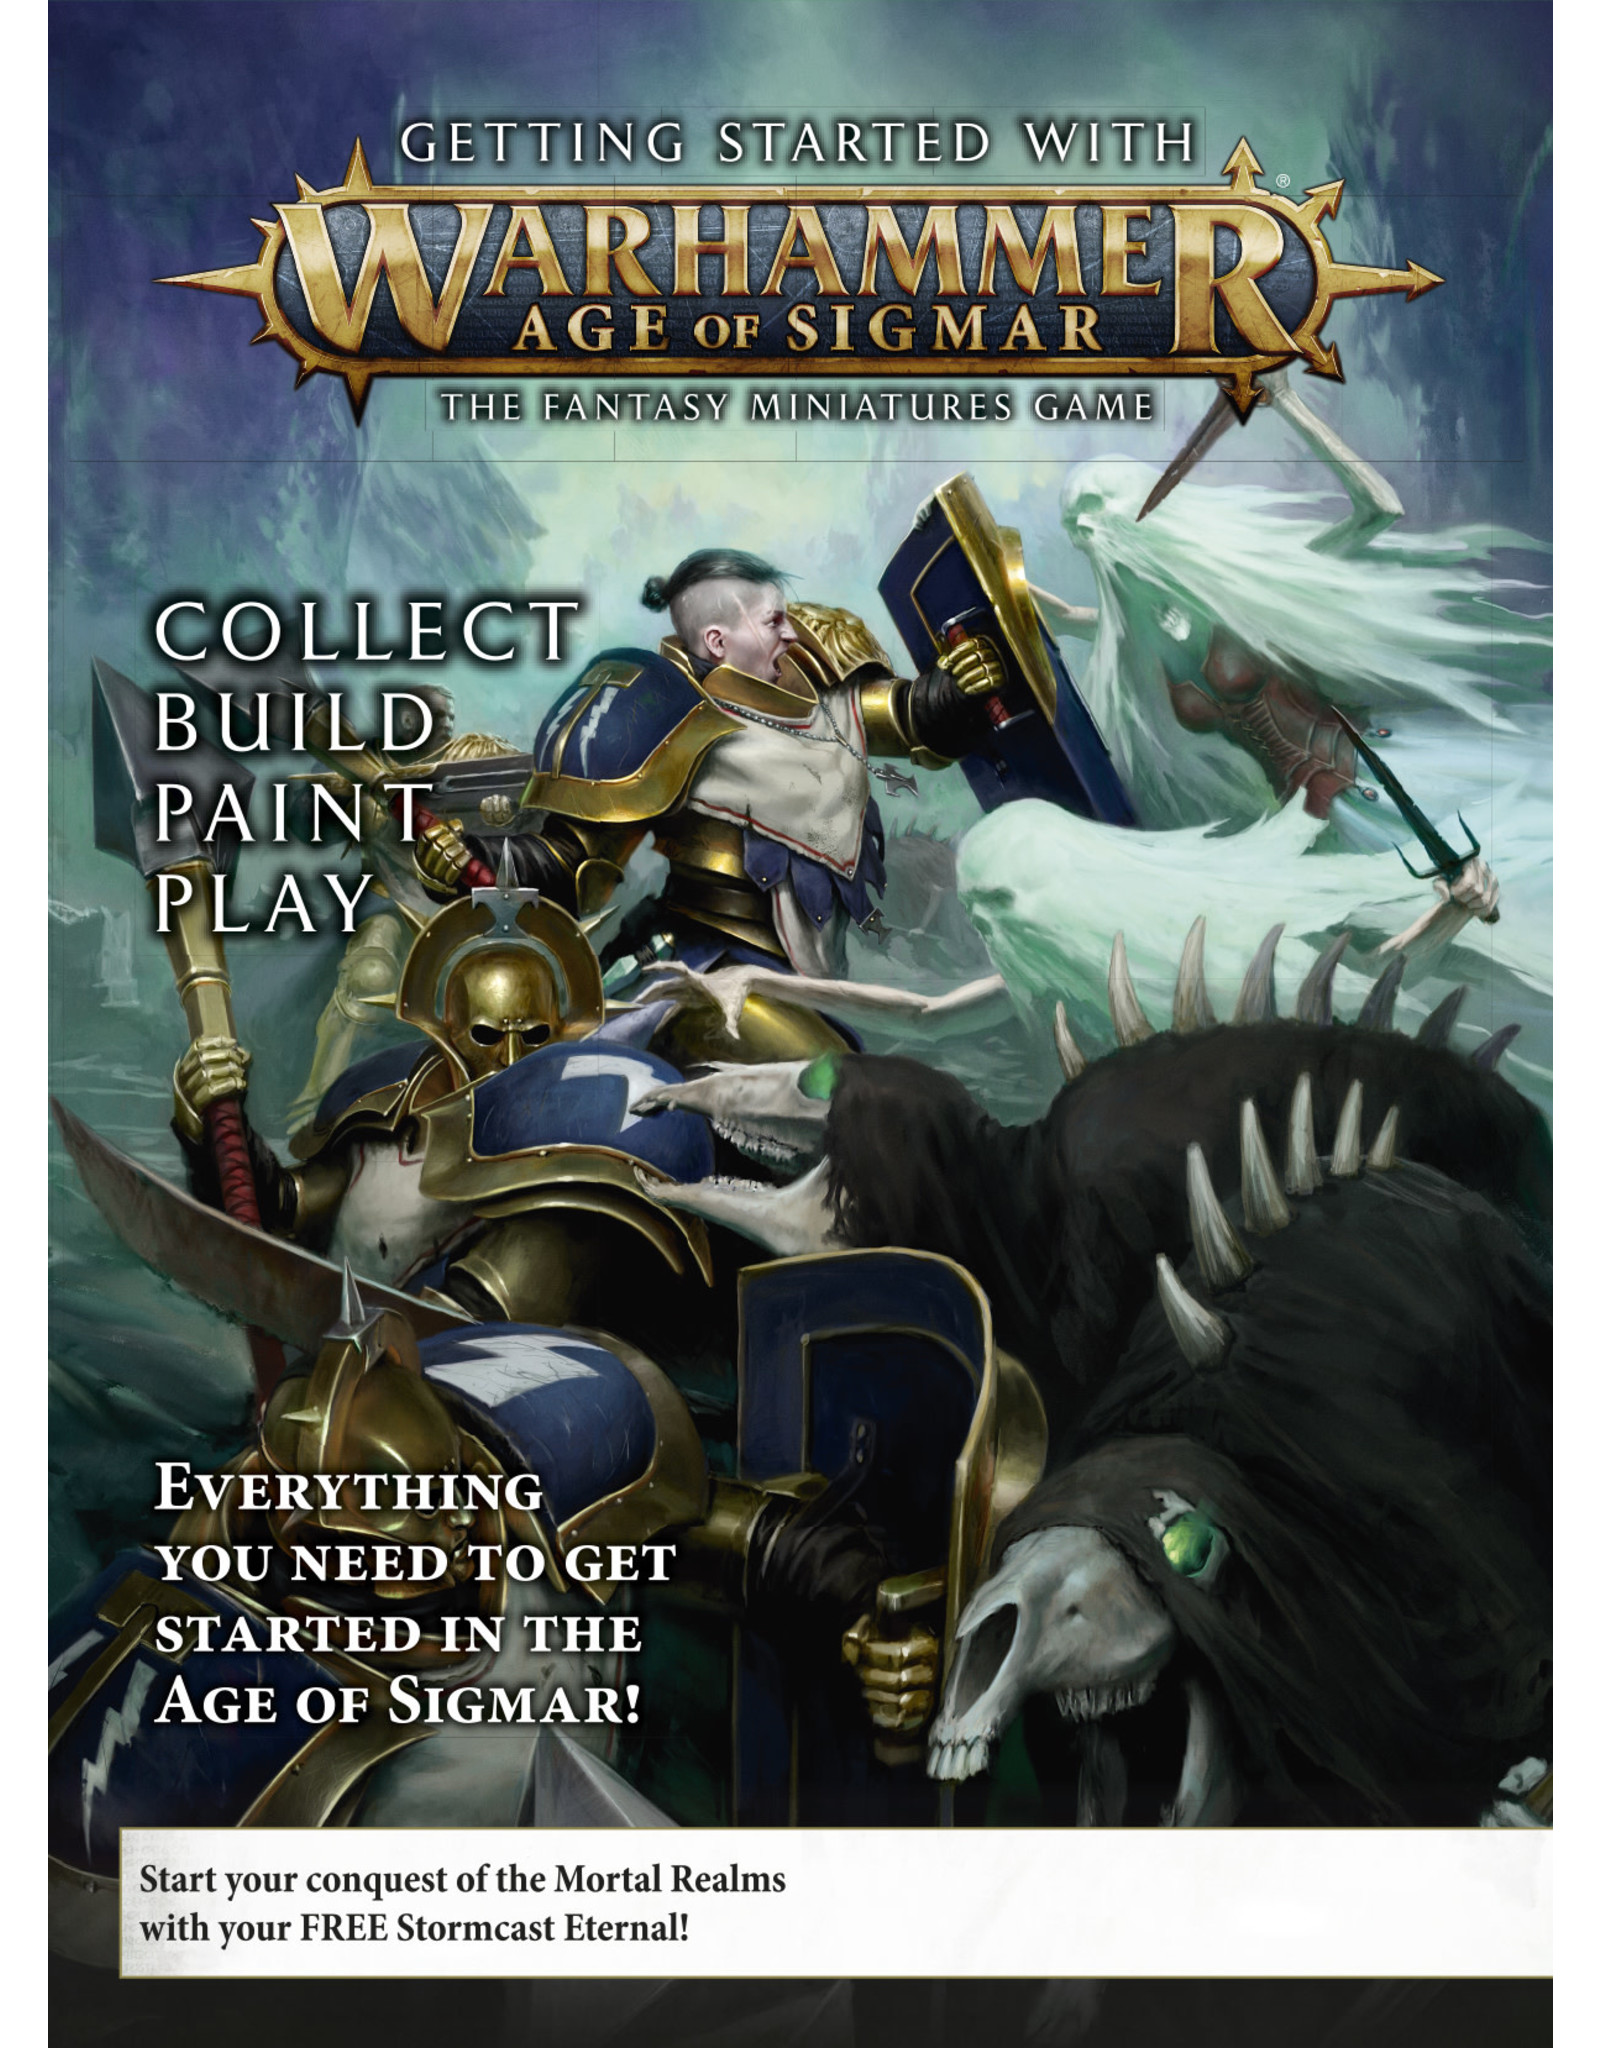 Warhammer Age of Sigmar Getting Started With Age of Sigmar